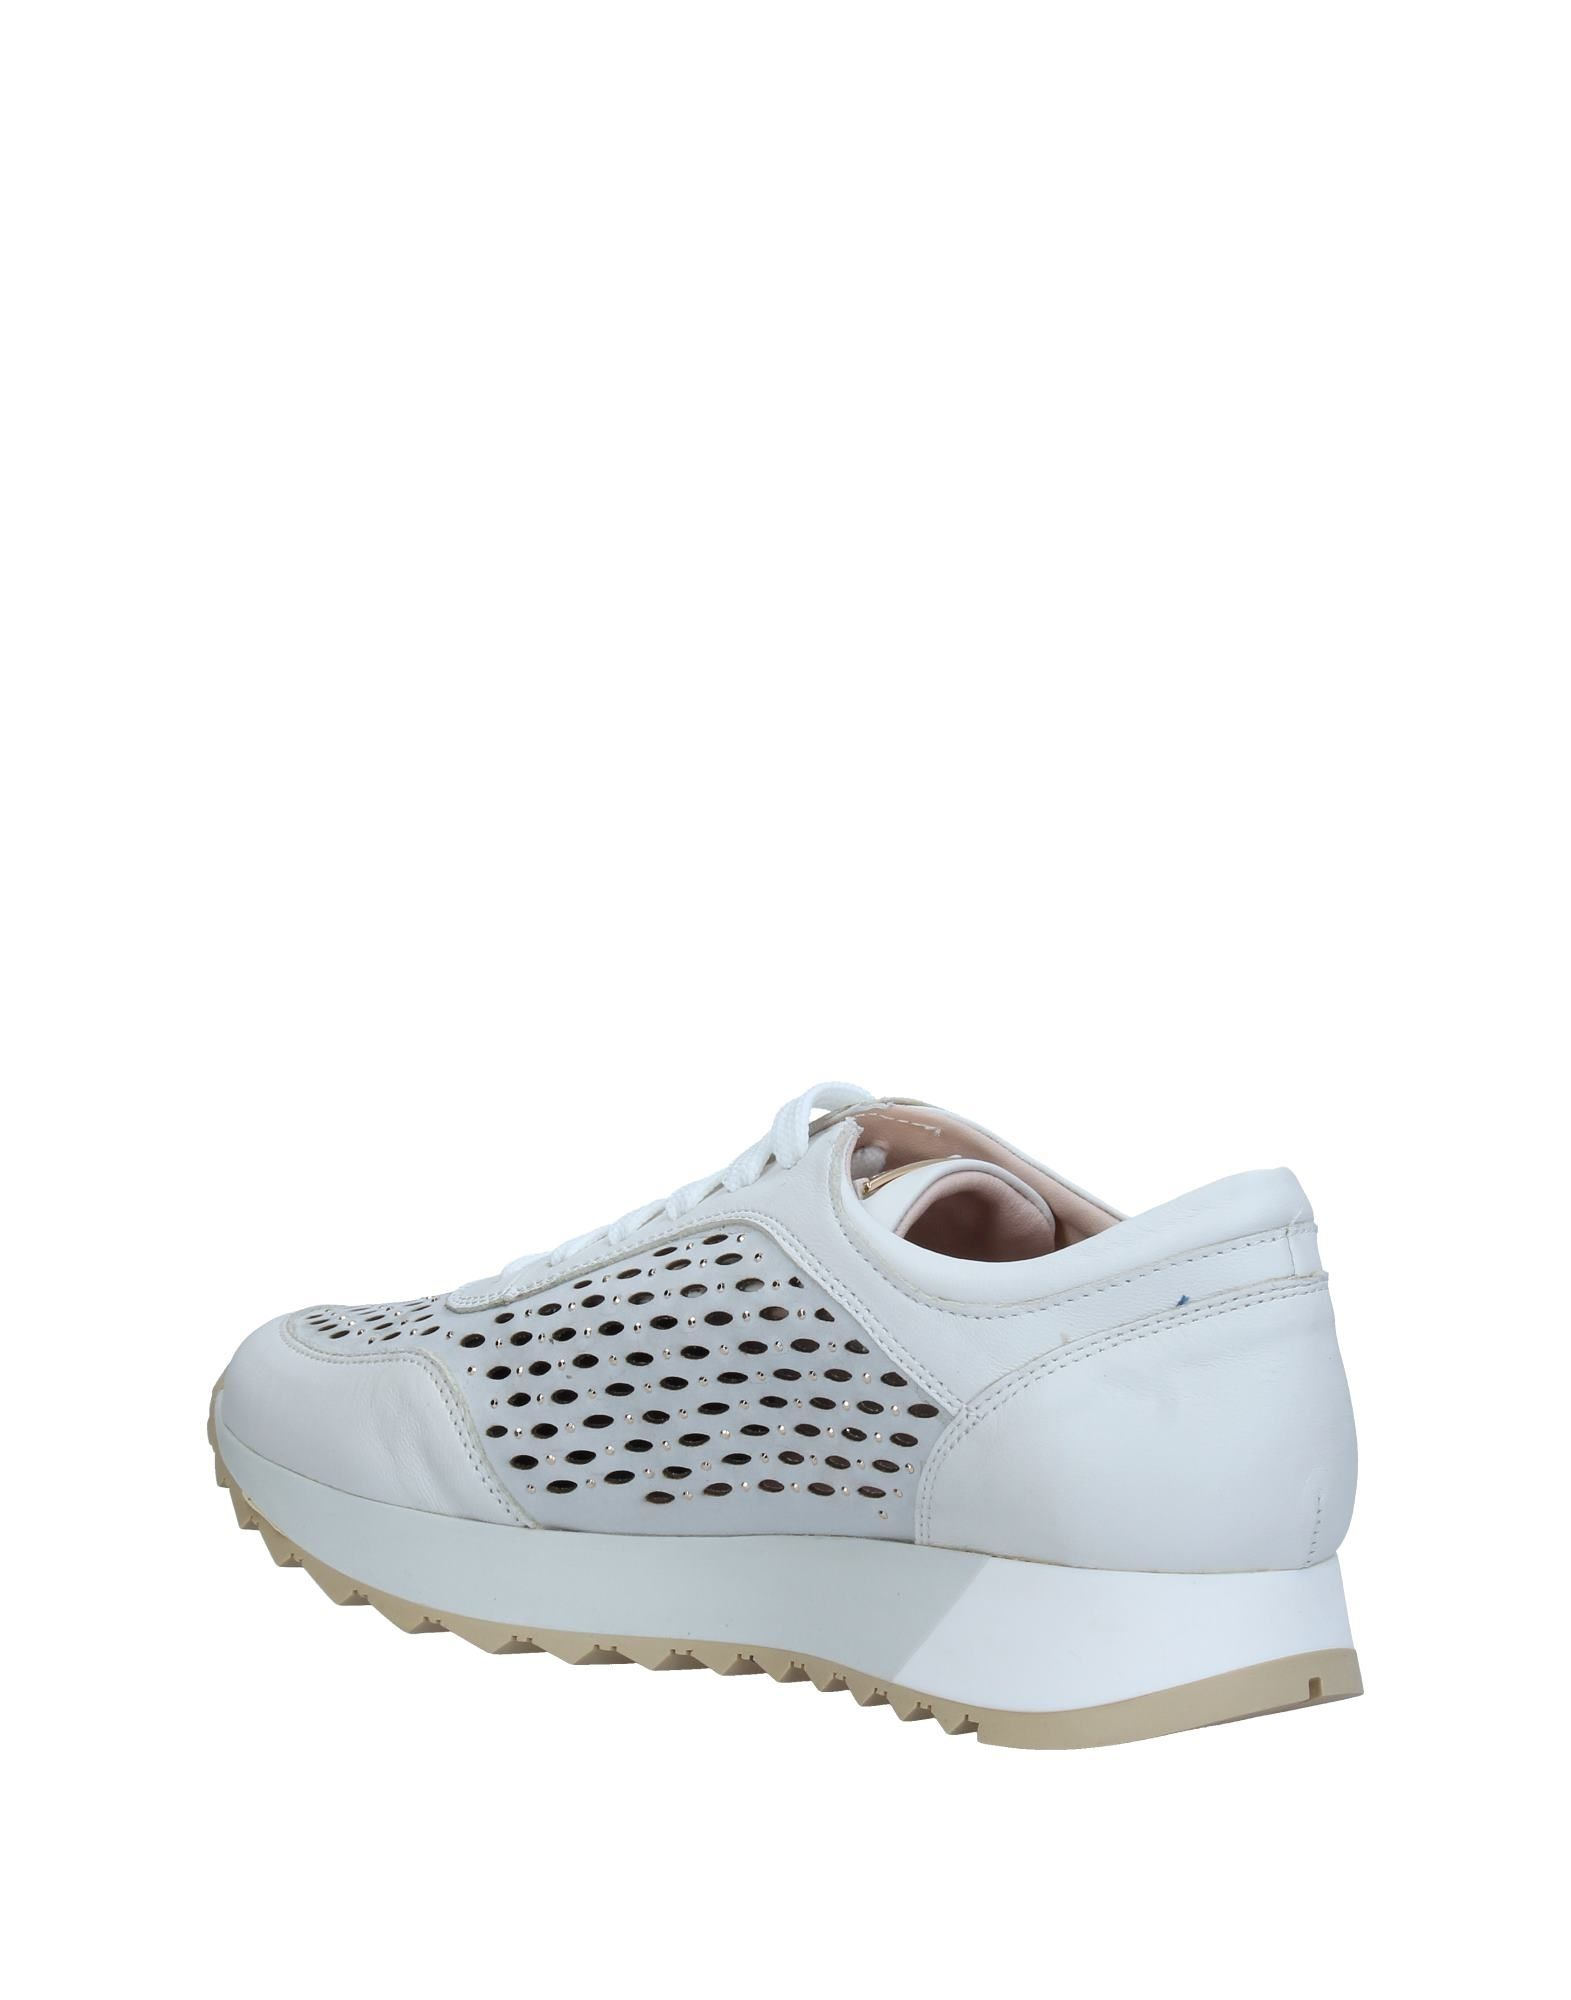 Sneakers Tosca Blu Shoes Femme - Sneakers Tosca Blu Shoes sur